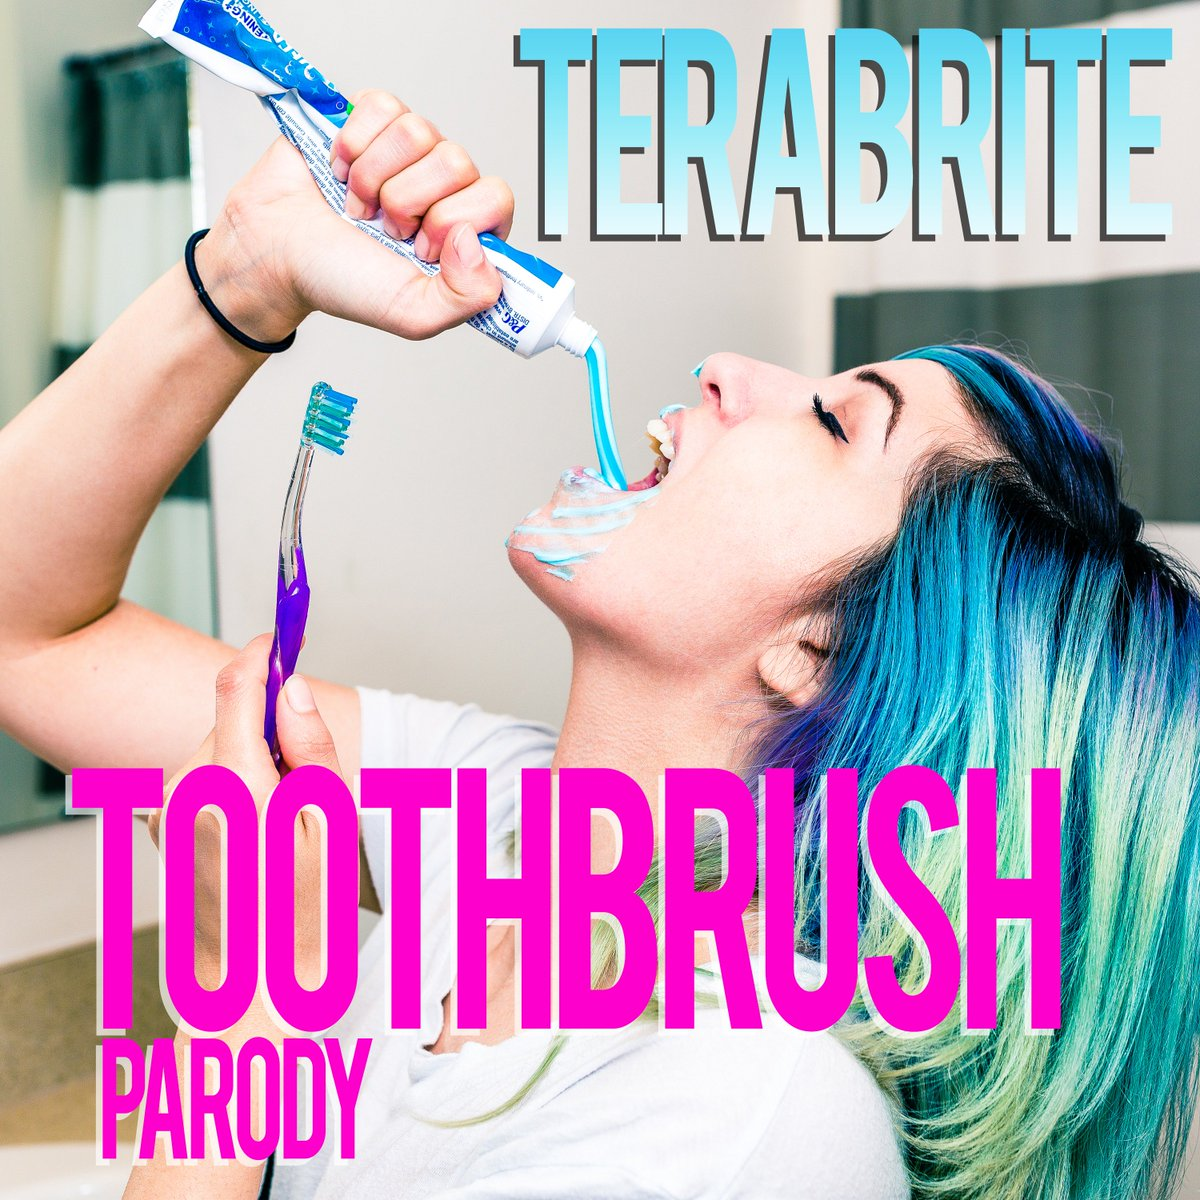 NEW VIDEO: https://t.co/YdwT7teOnA (Our parody of #TOOTHBRUSH by #DNCE)   Let's get @DNCE & @joejonas to see it! RT? https://t.co/L4edD7JLKR